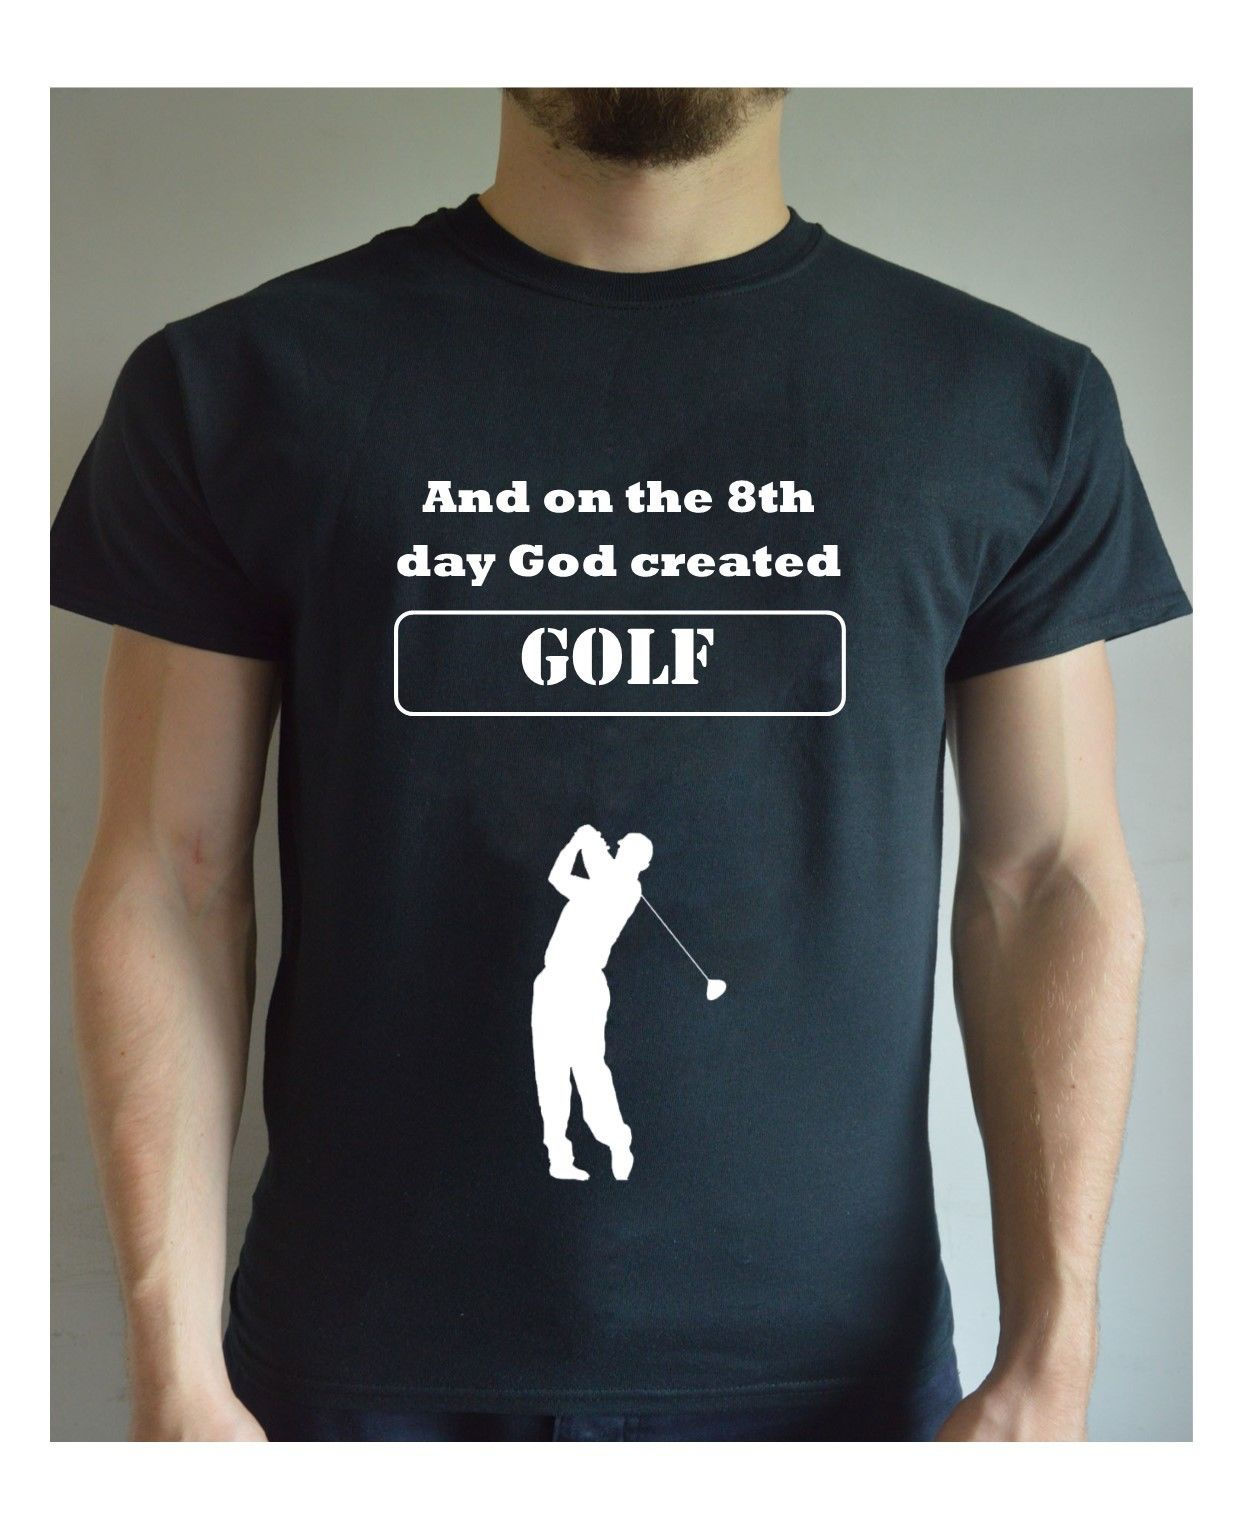 Normal Short Sleeve Cotton T Shirts And On The 8th Day God Created Golfed Printed T Shirt Funny Top Tee Christmas